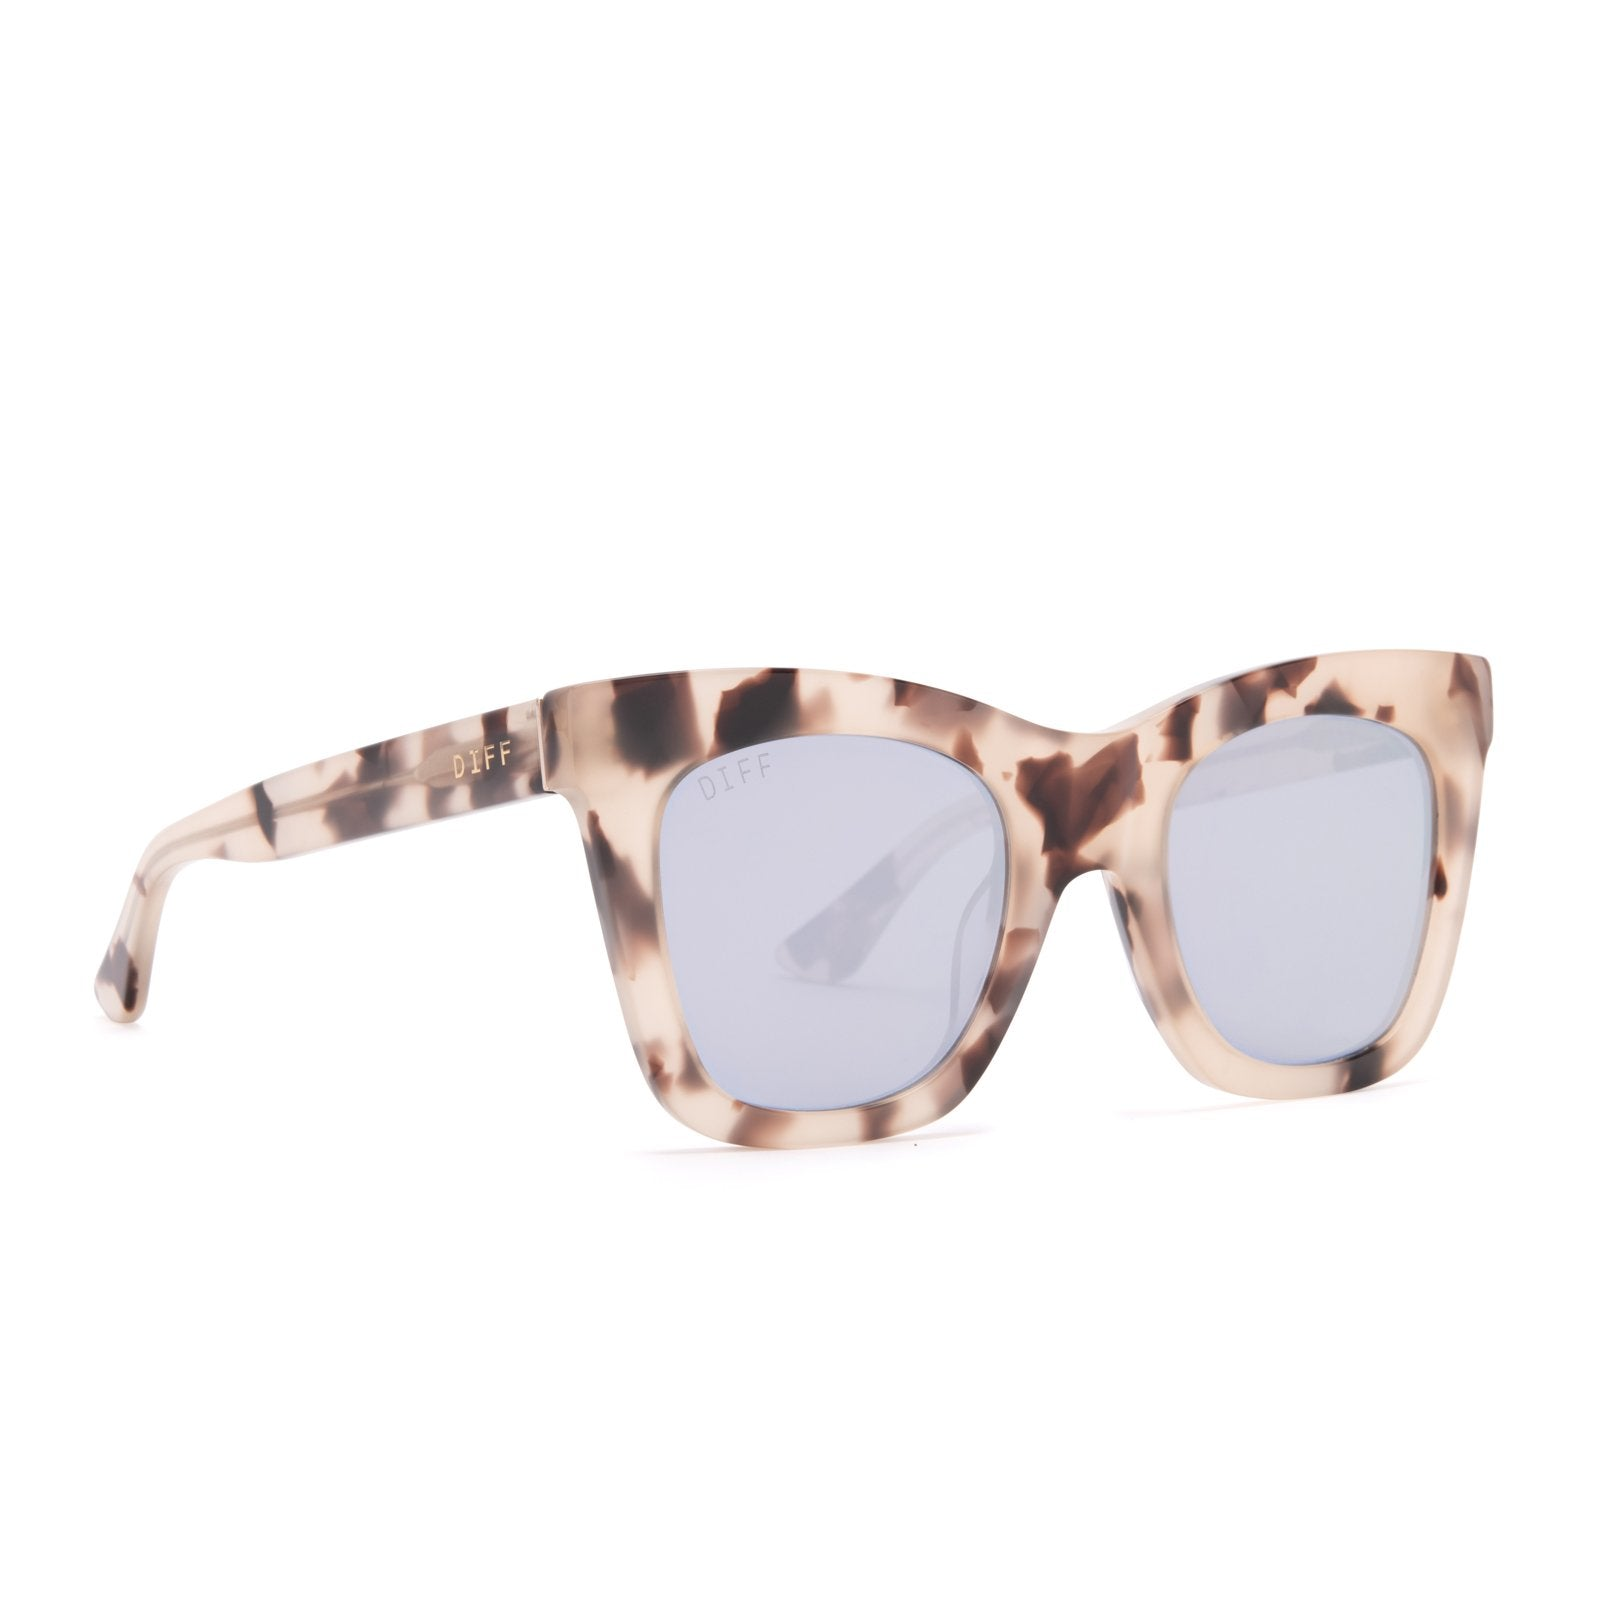 Lil Kaia sunglasses with cream tortoise l frames and lavender flash lens angle view